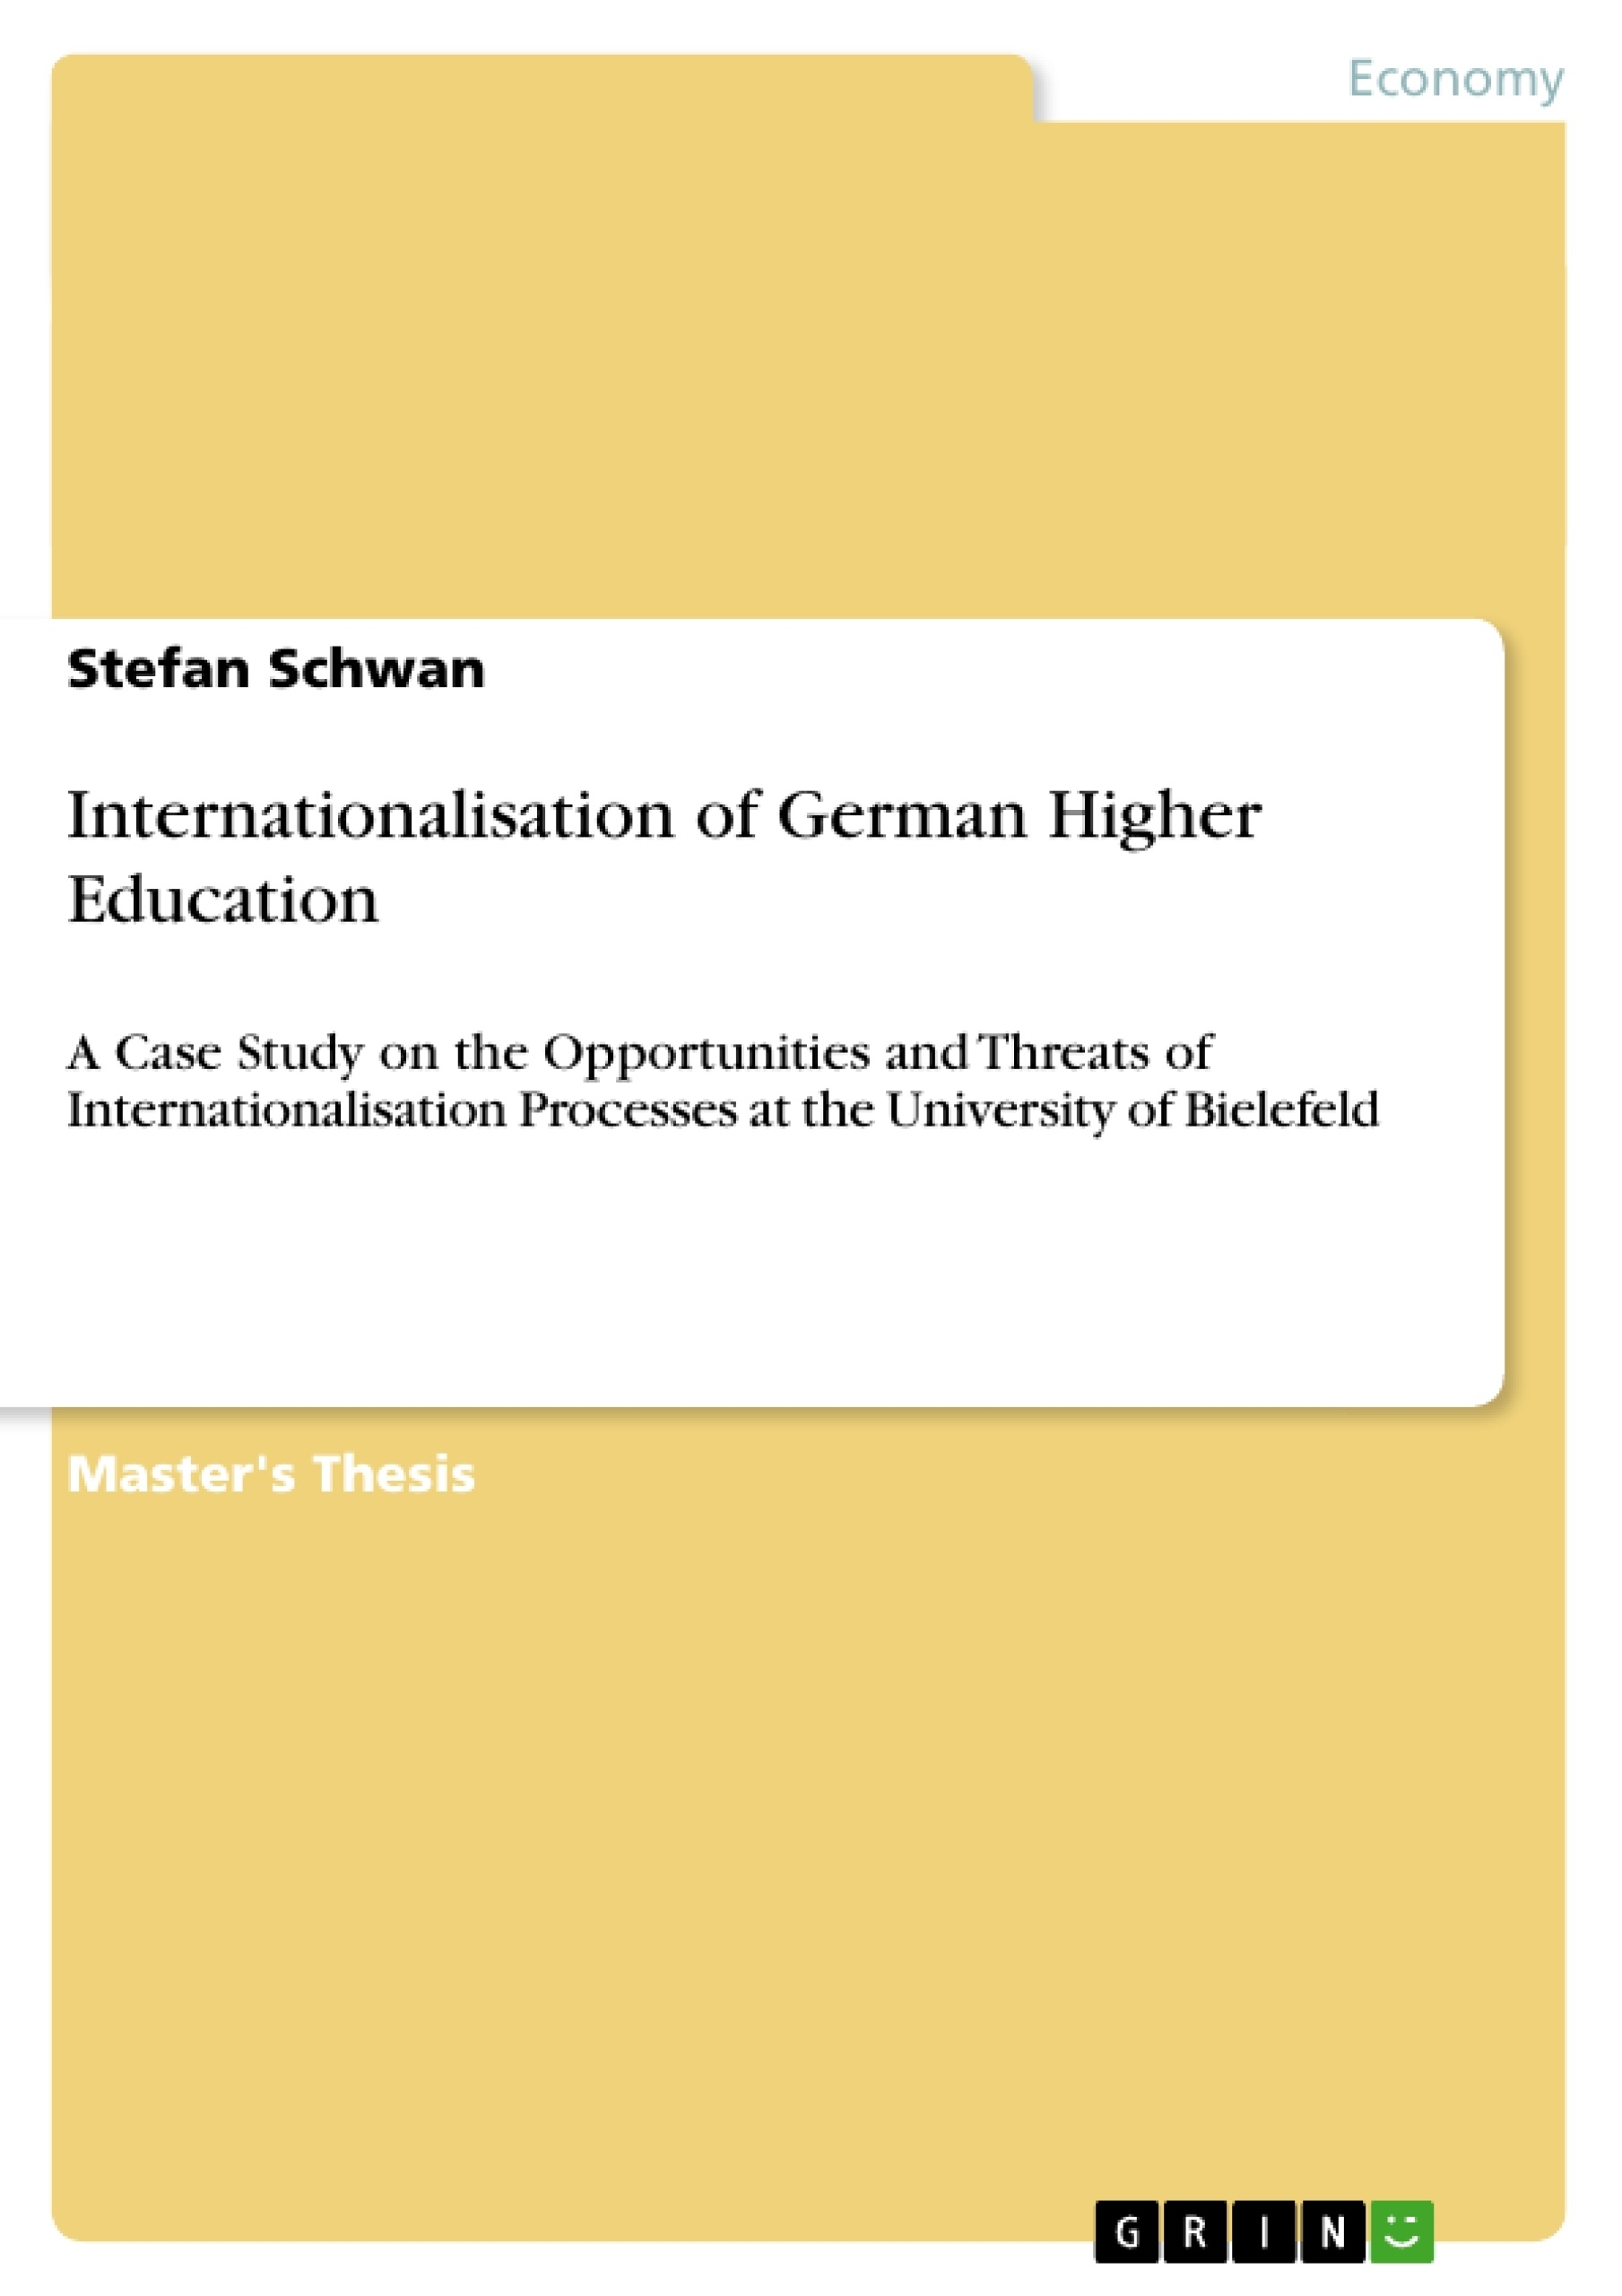 Diploma thesis in germany